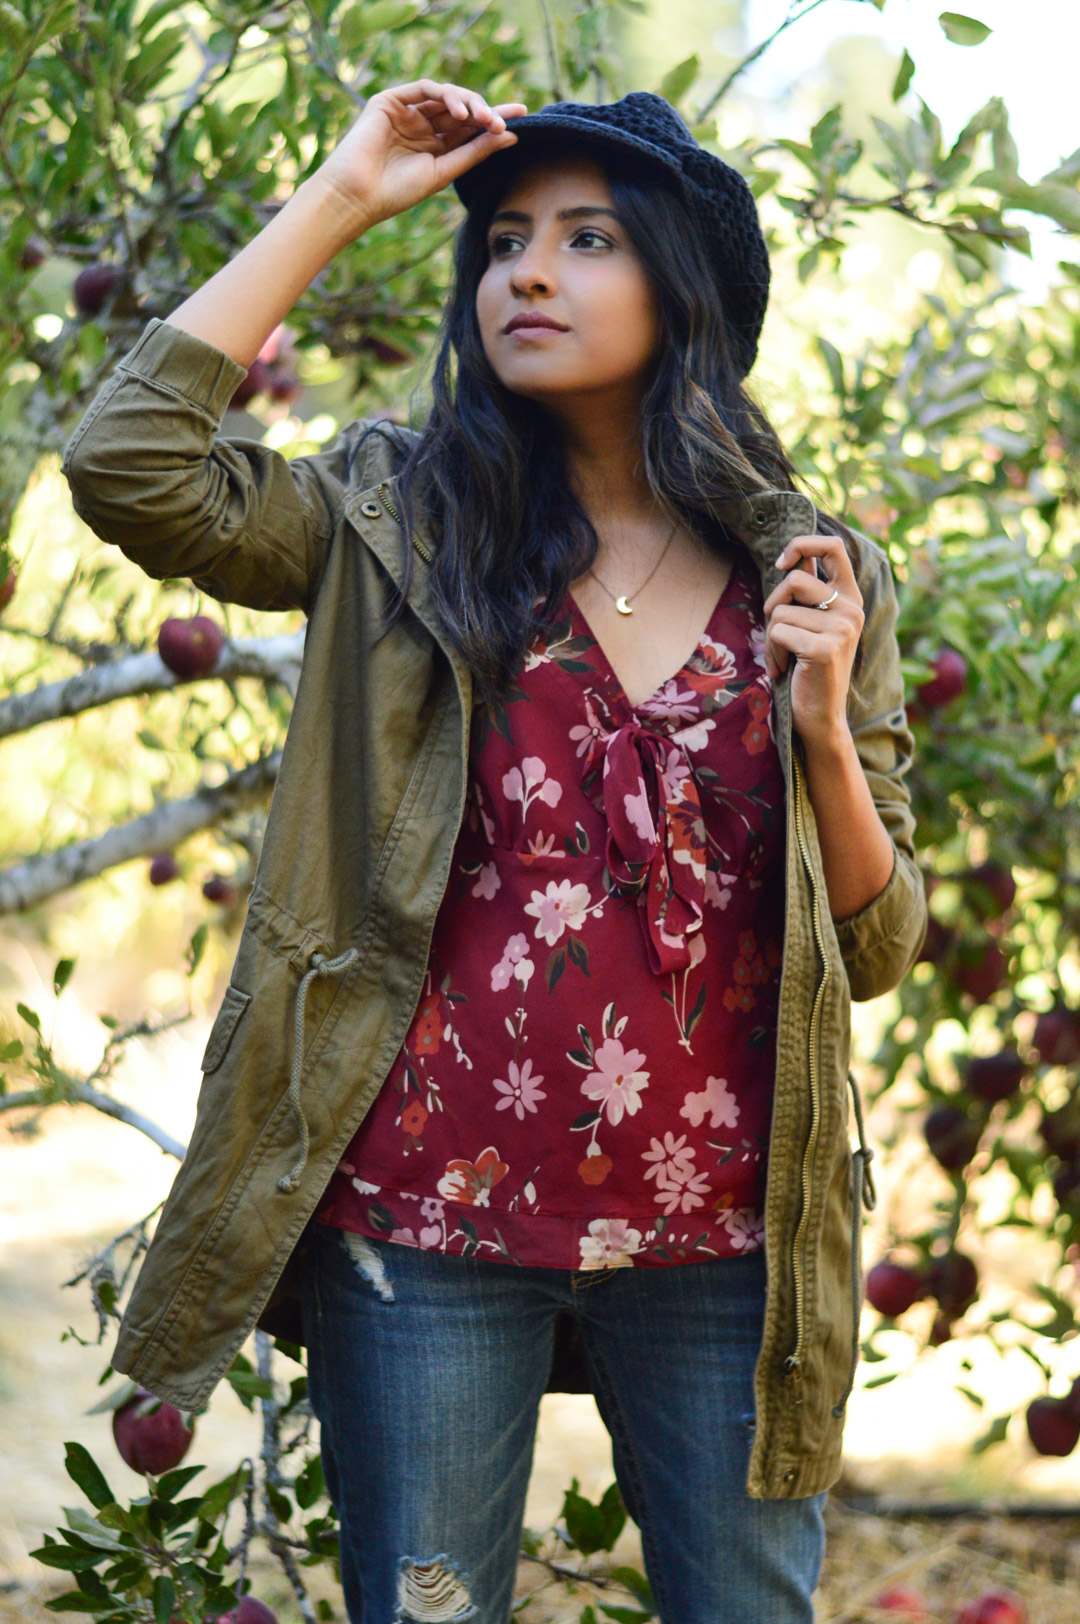 apple-picking-fall-florals-utility-jacket-blogger-outfit-california 5